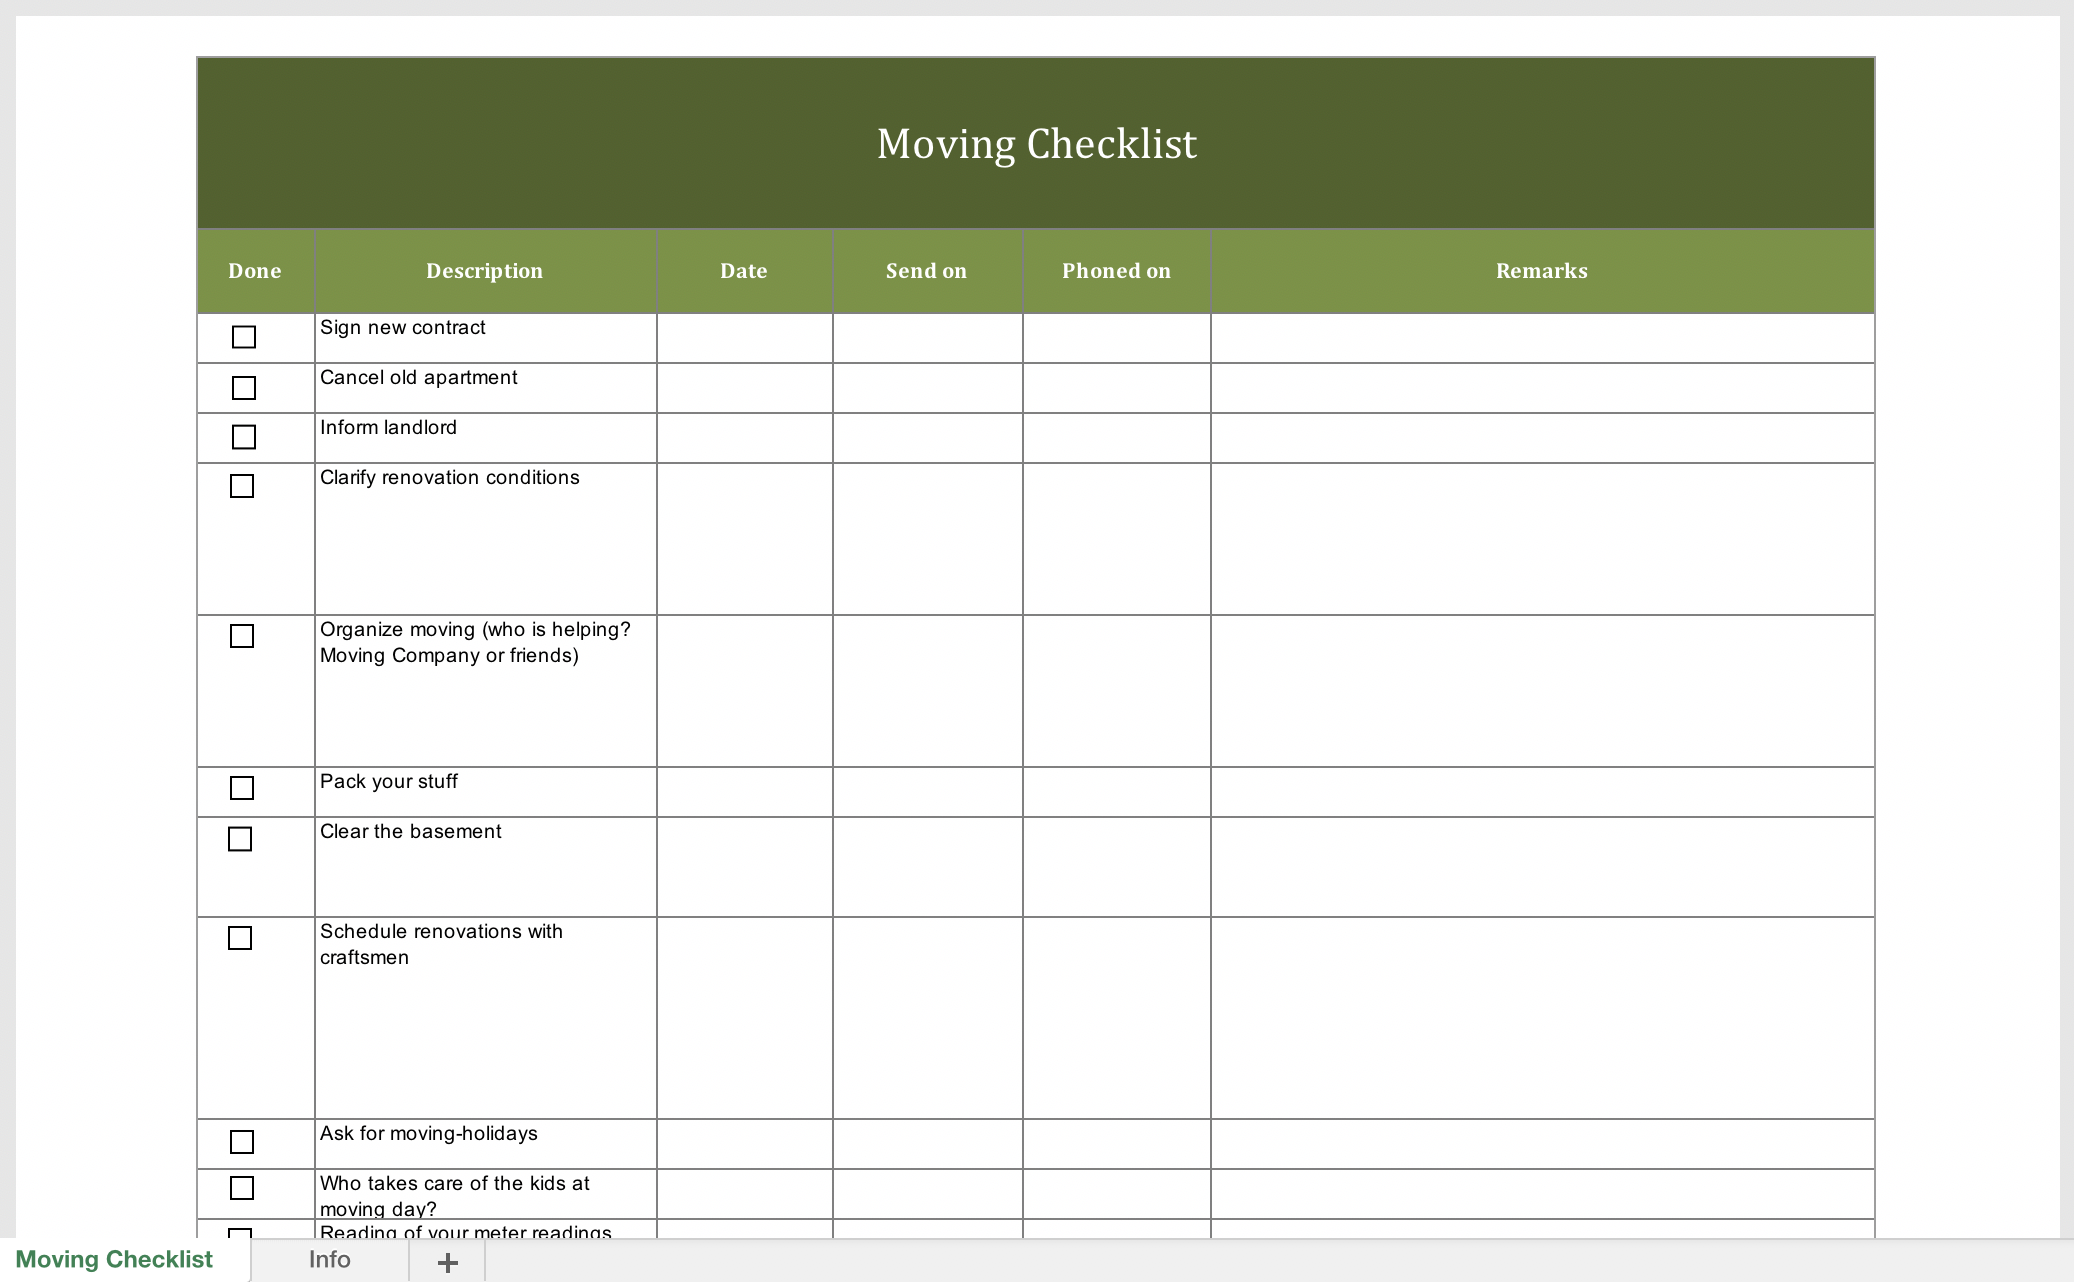 Free Moving Checklist Excel Templates For Every Purpose